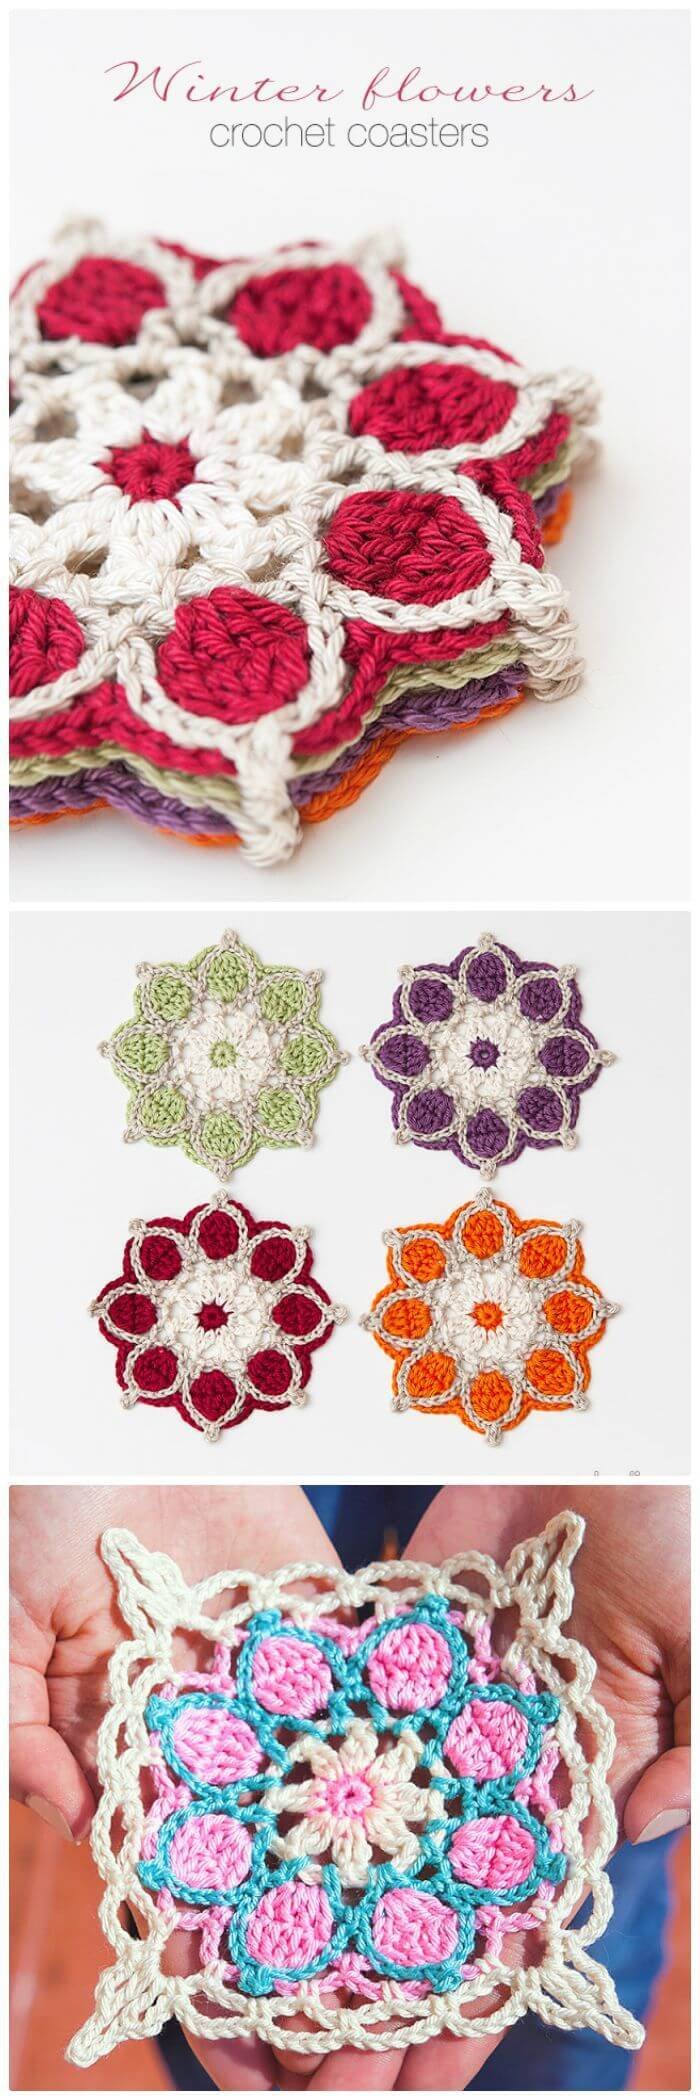 DIY Winter Flowers Crochet Coasters-Free Crochet Pattern, How to crochet a coaster step-by-step!